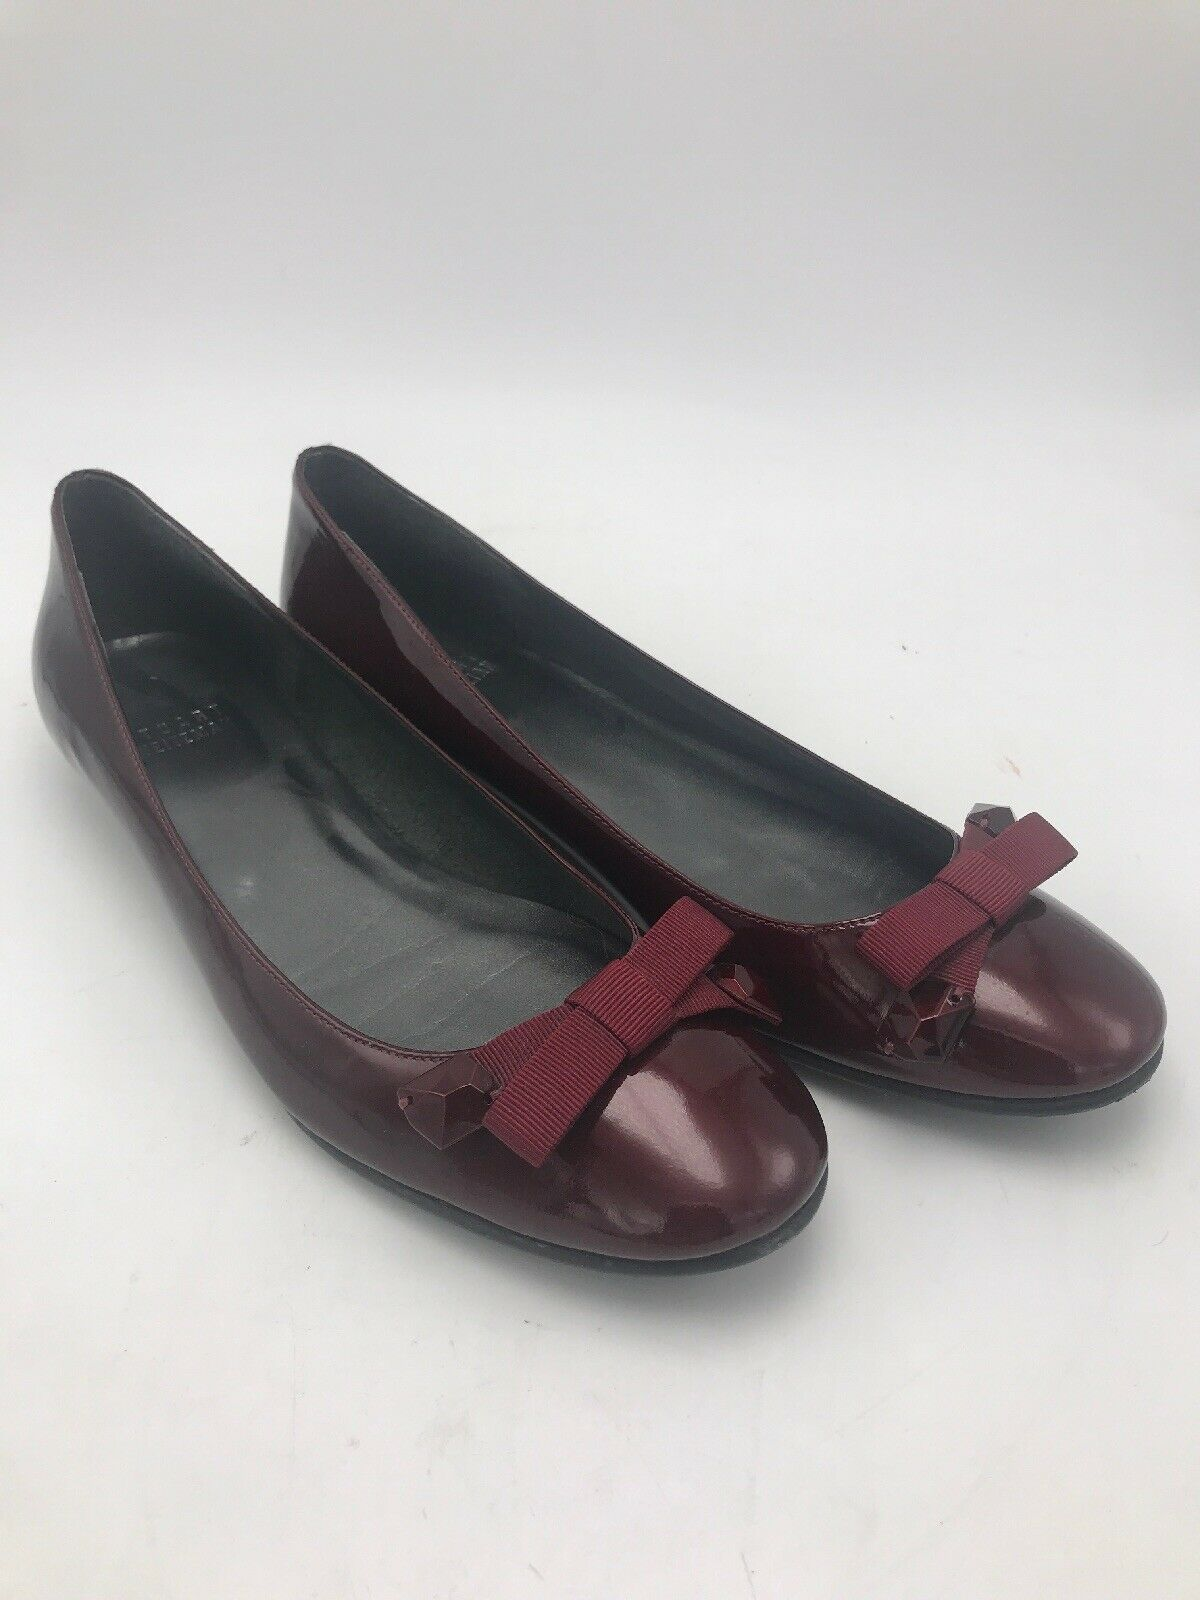 STUART WEITZMAN Bejewel Ruby Red Patent Leather Bow Ballet Flats 6.5M  385